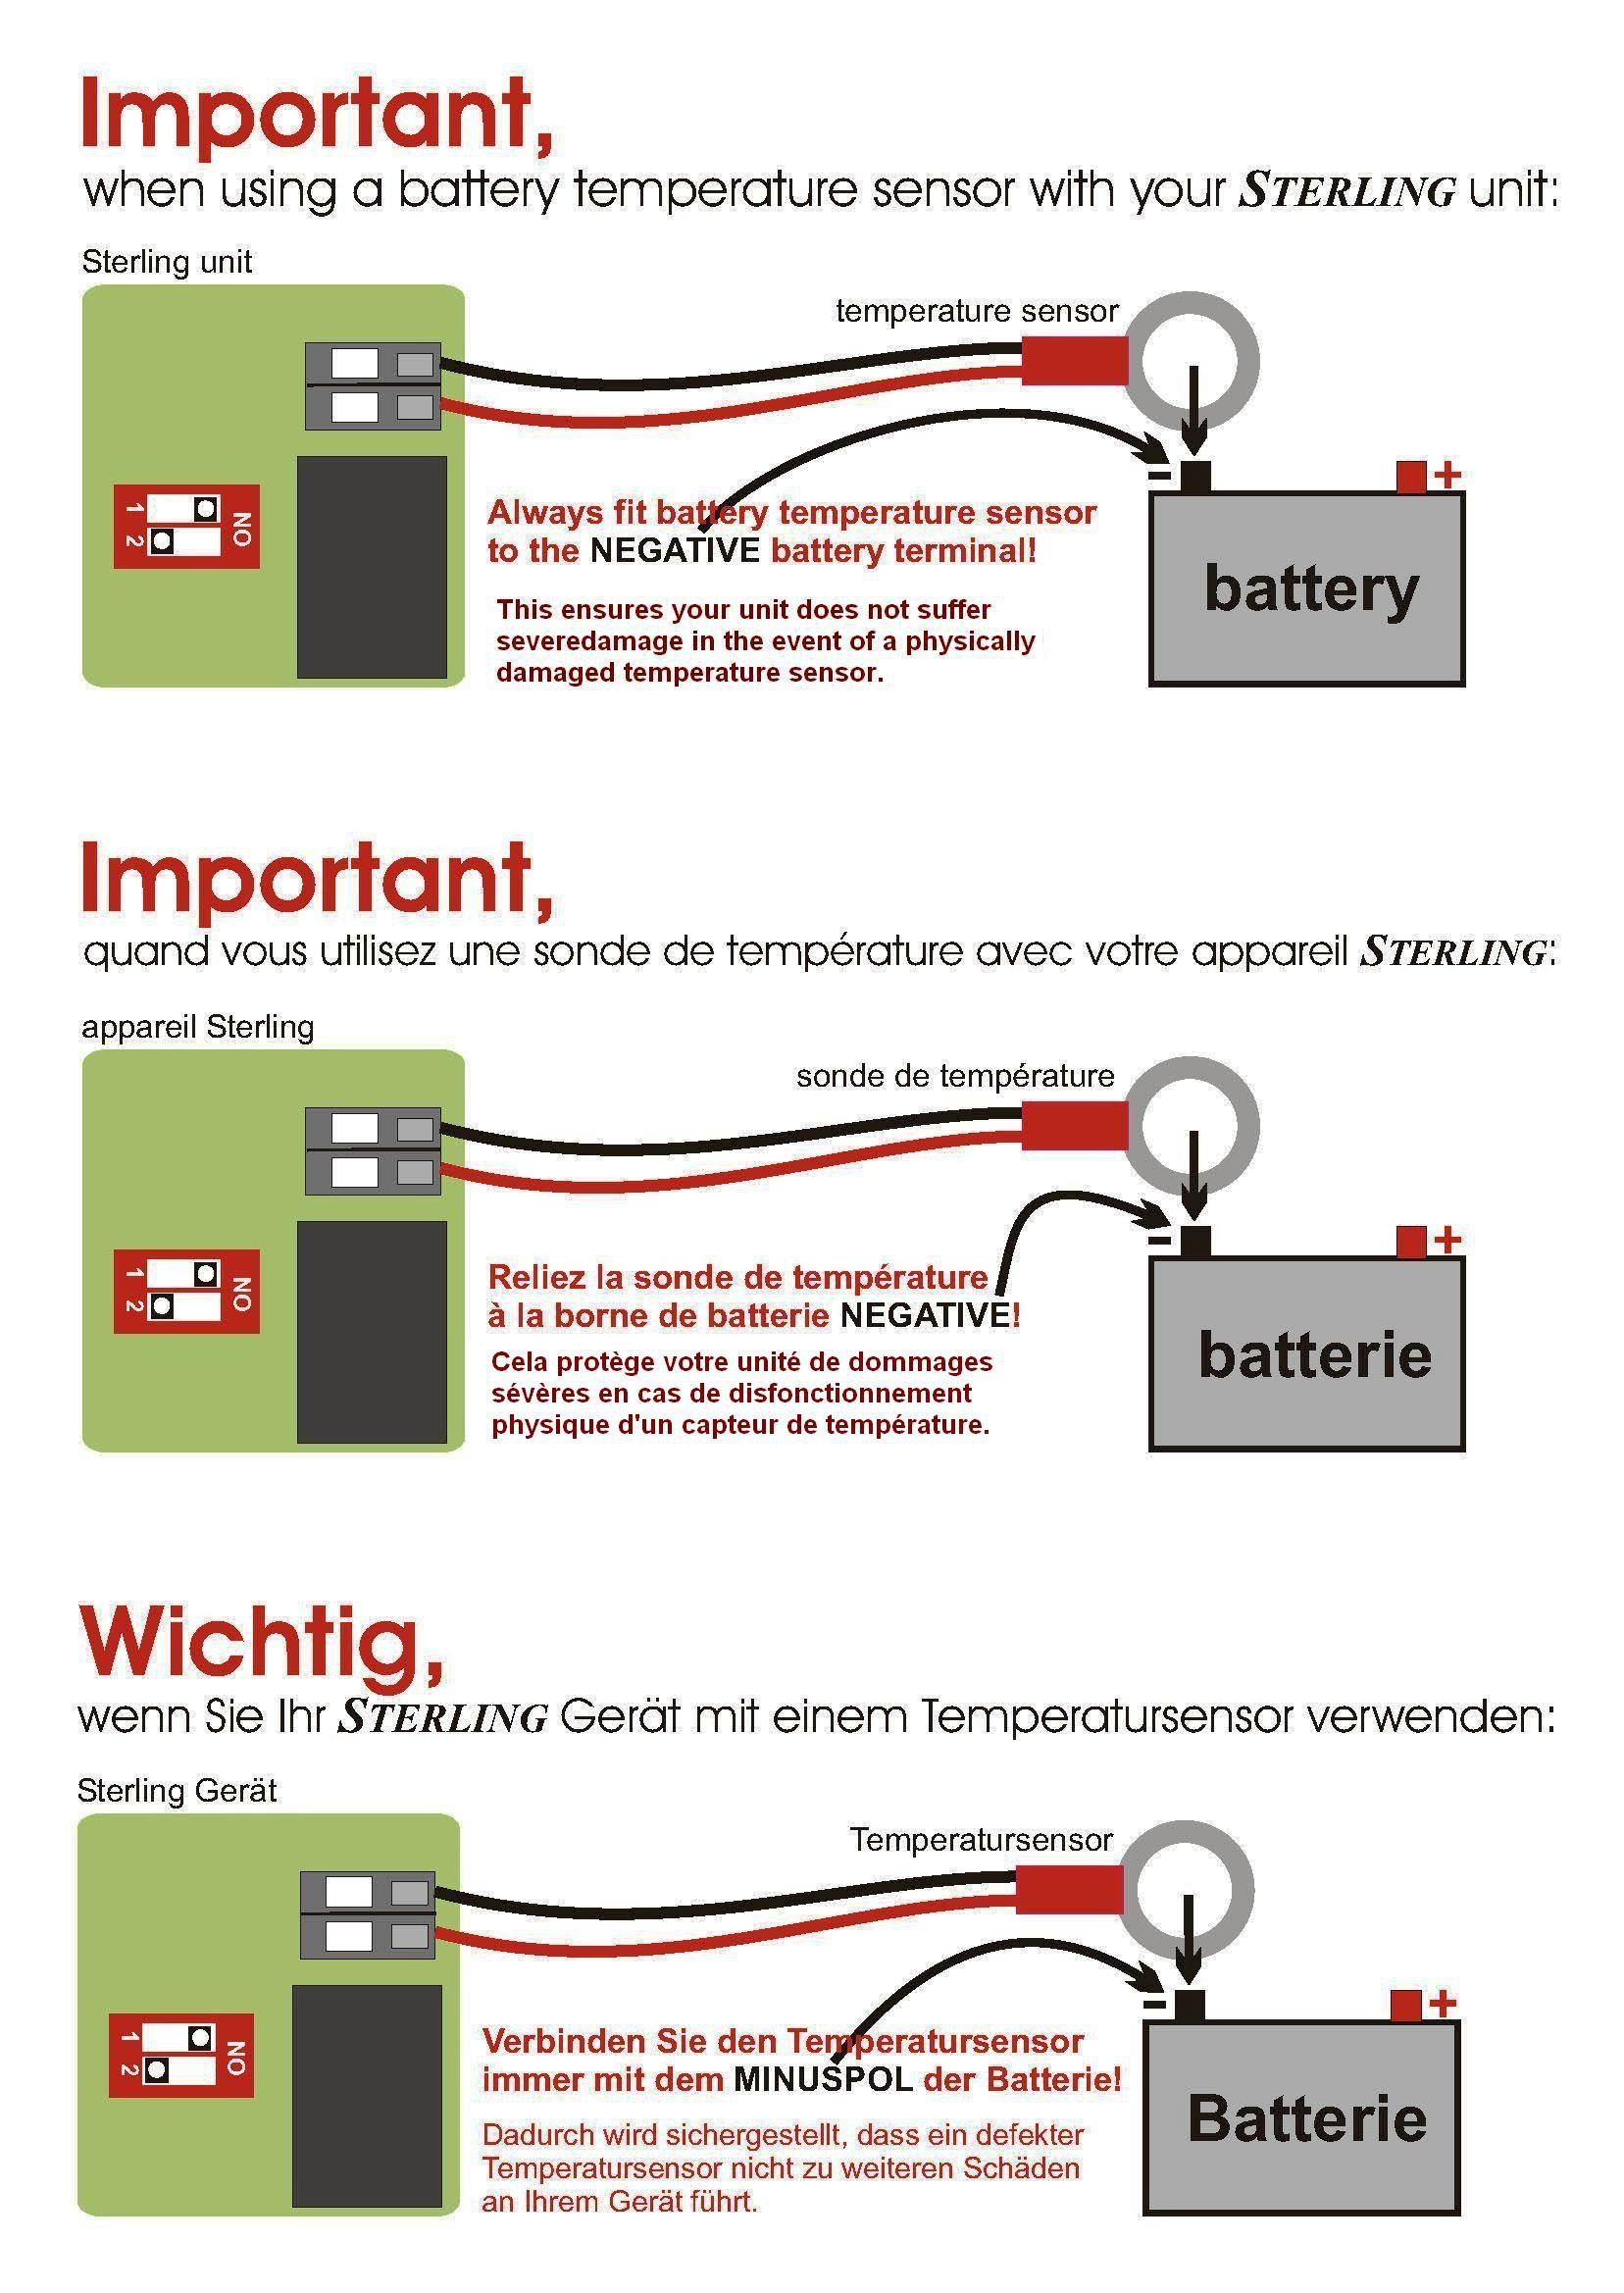 Rv Battery Disconnect Switch Wiring Diagram Fresh Rv Battery - Battery Disconnect Switch Wiring Diagram